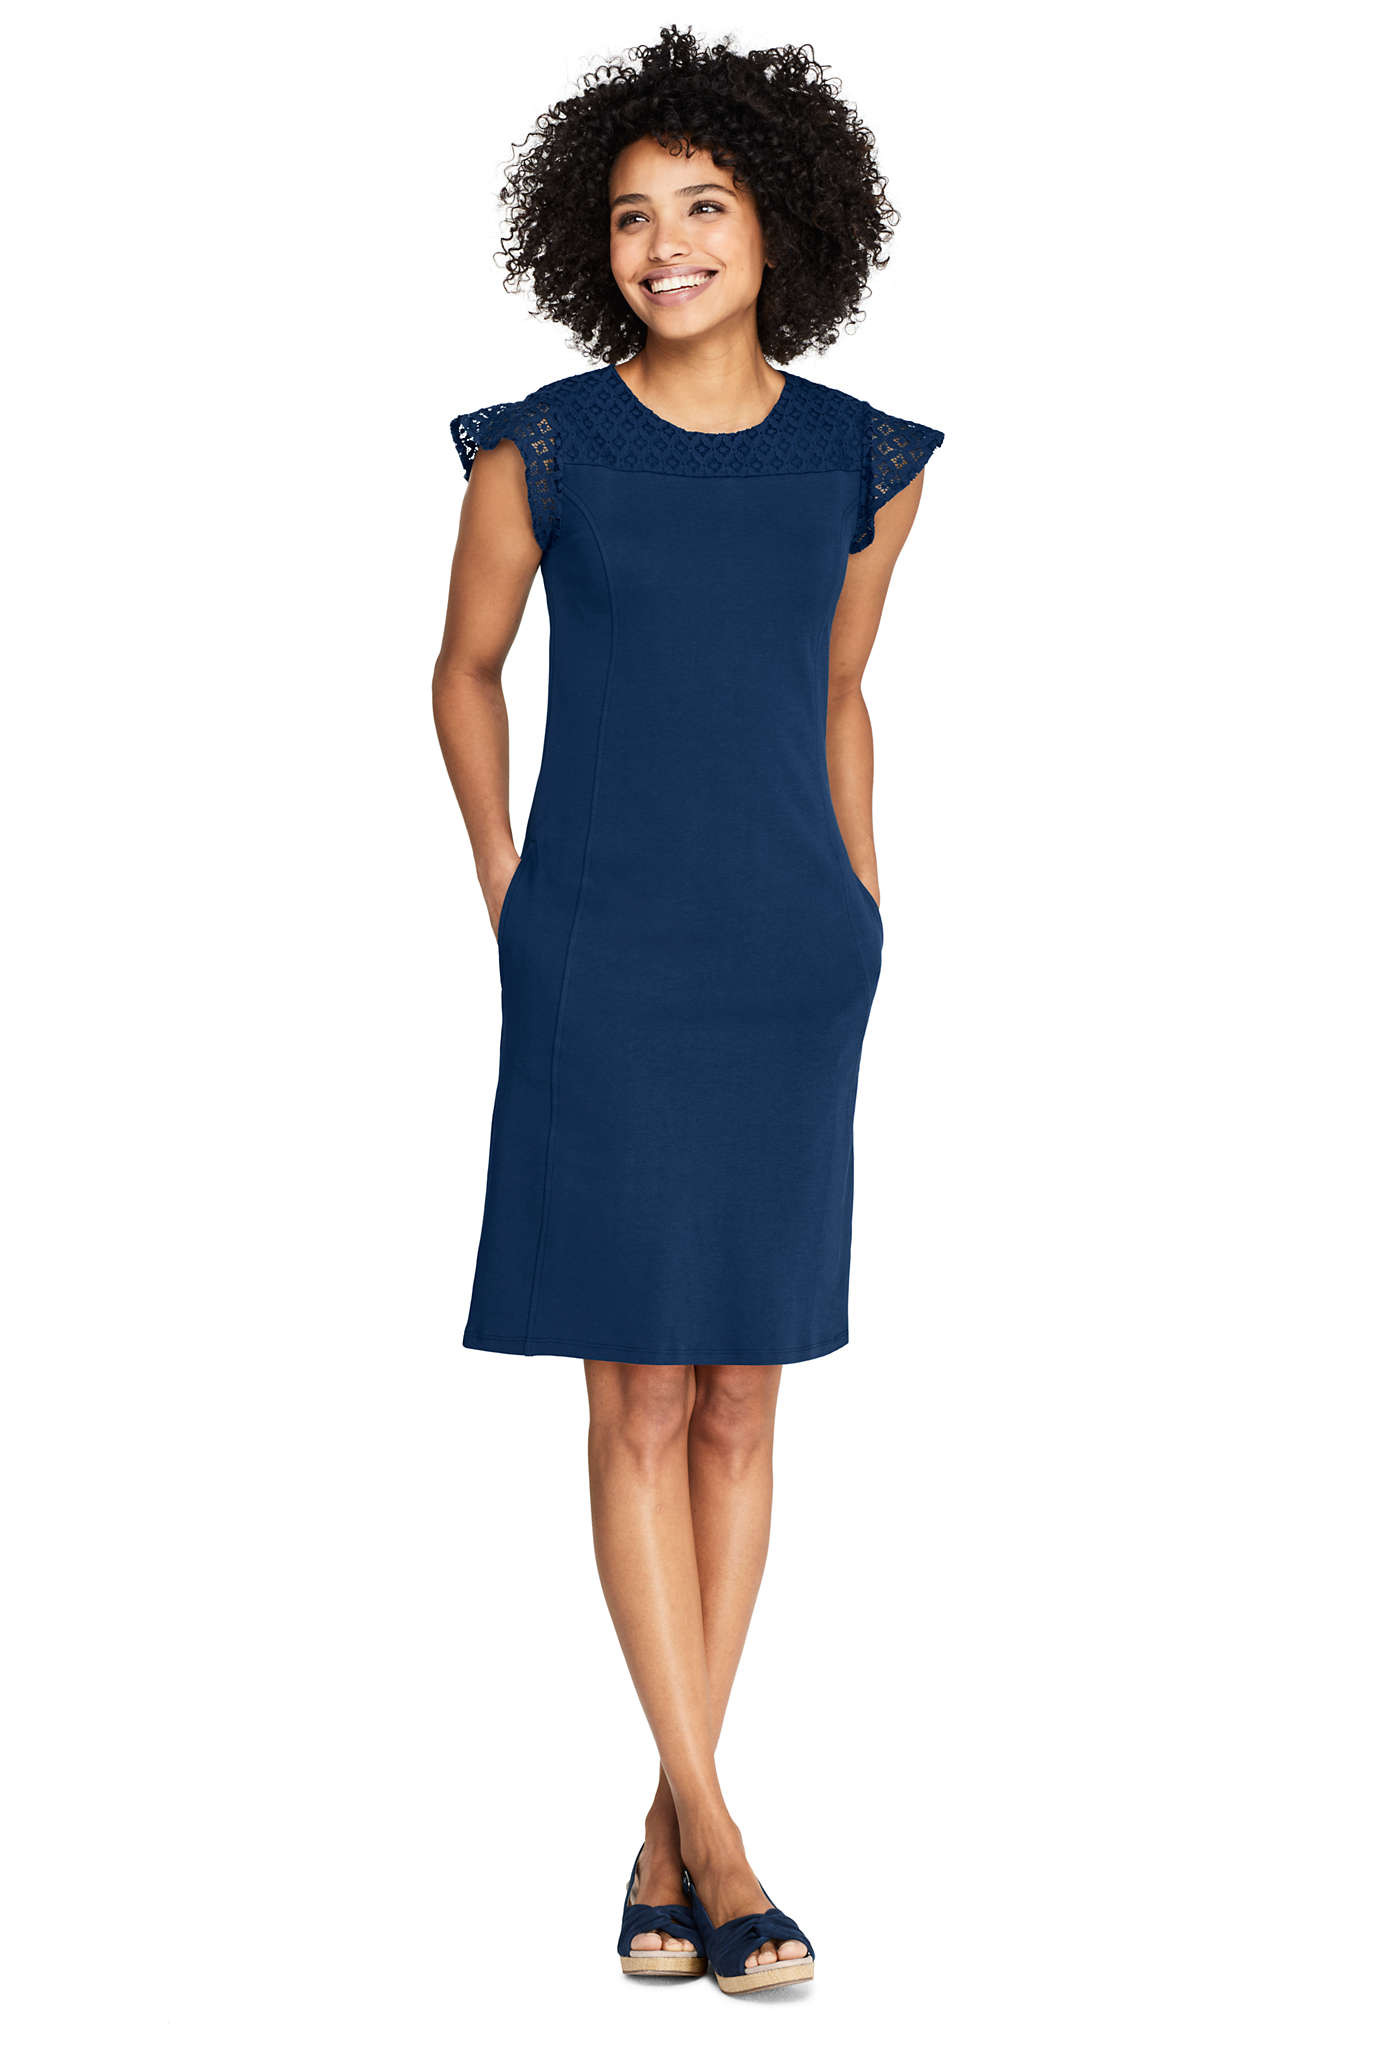 Women's Short Sleeve Knit Sheath Dress